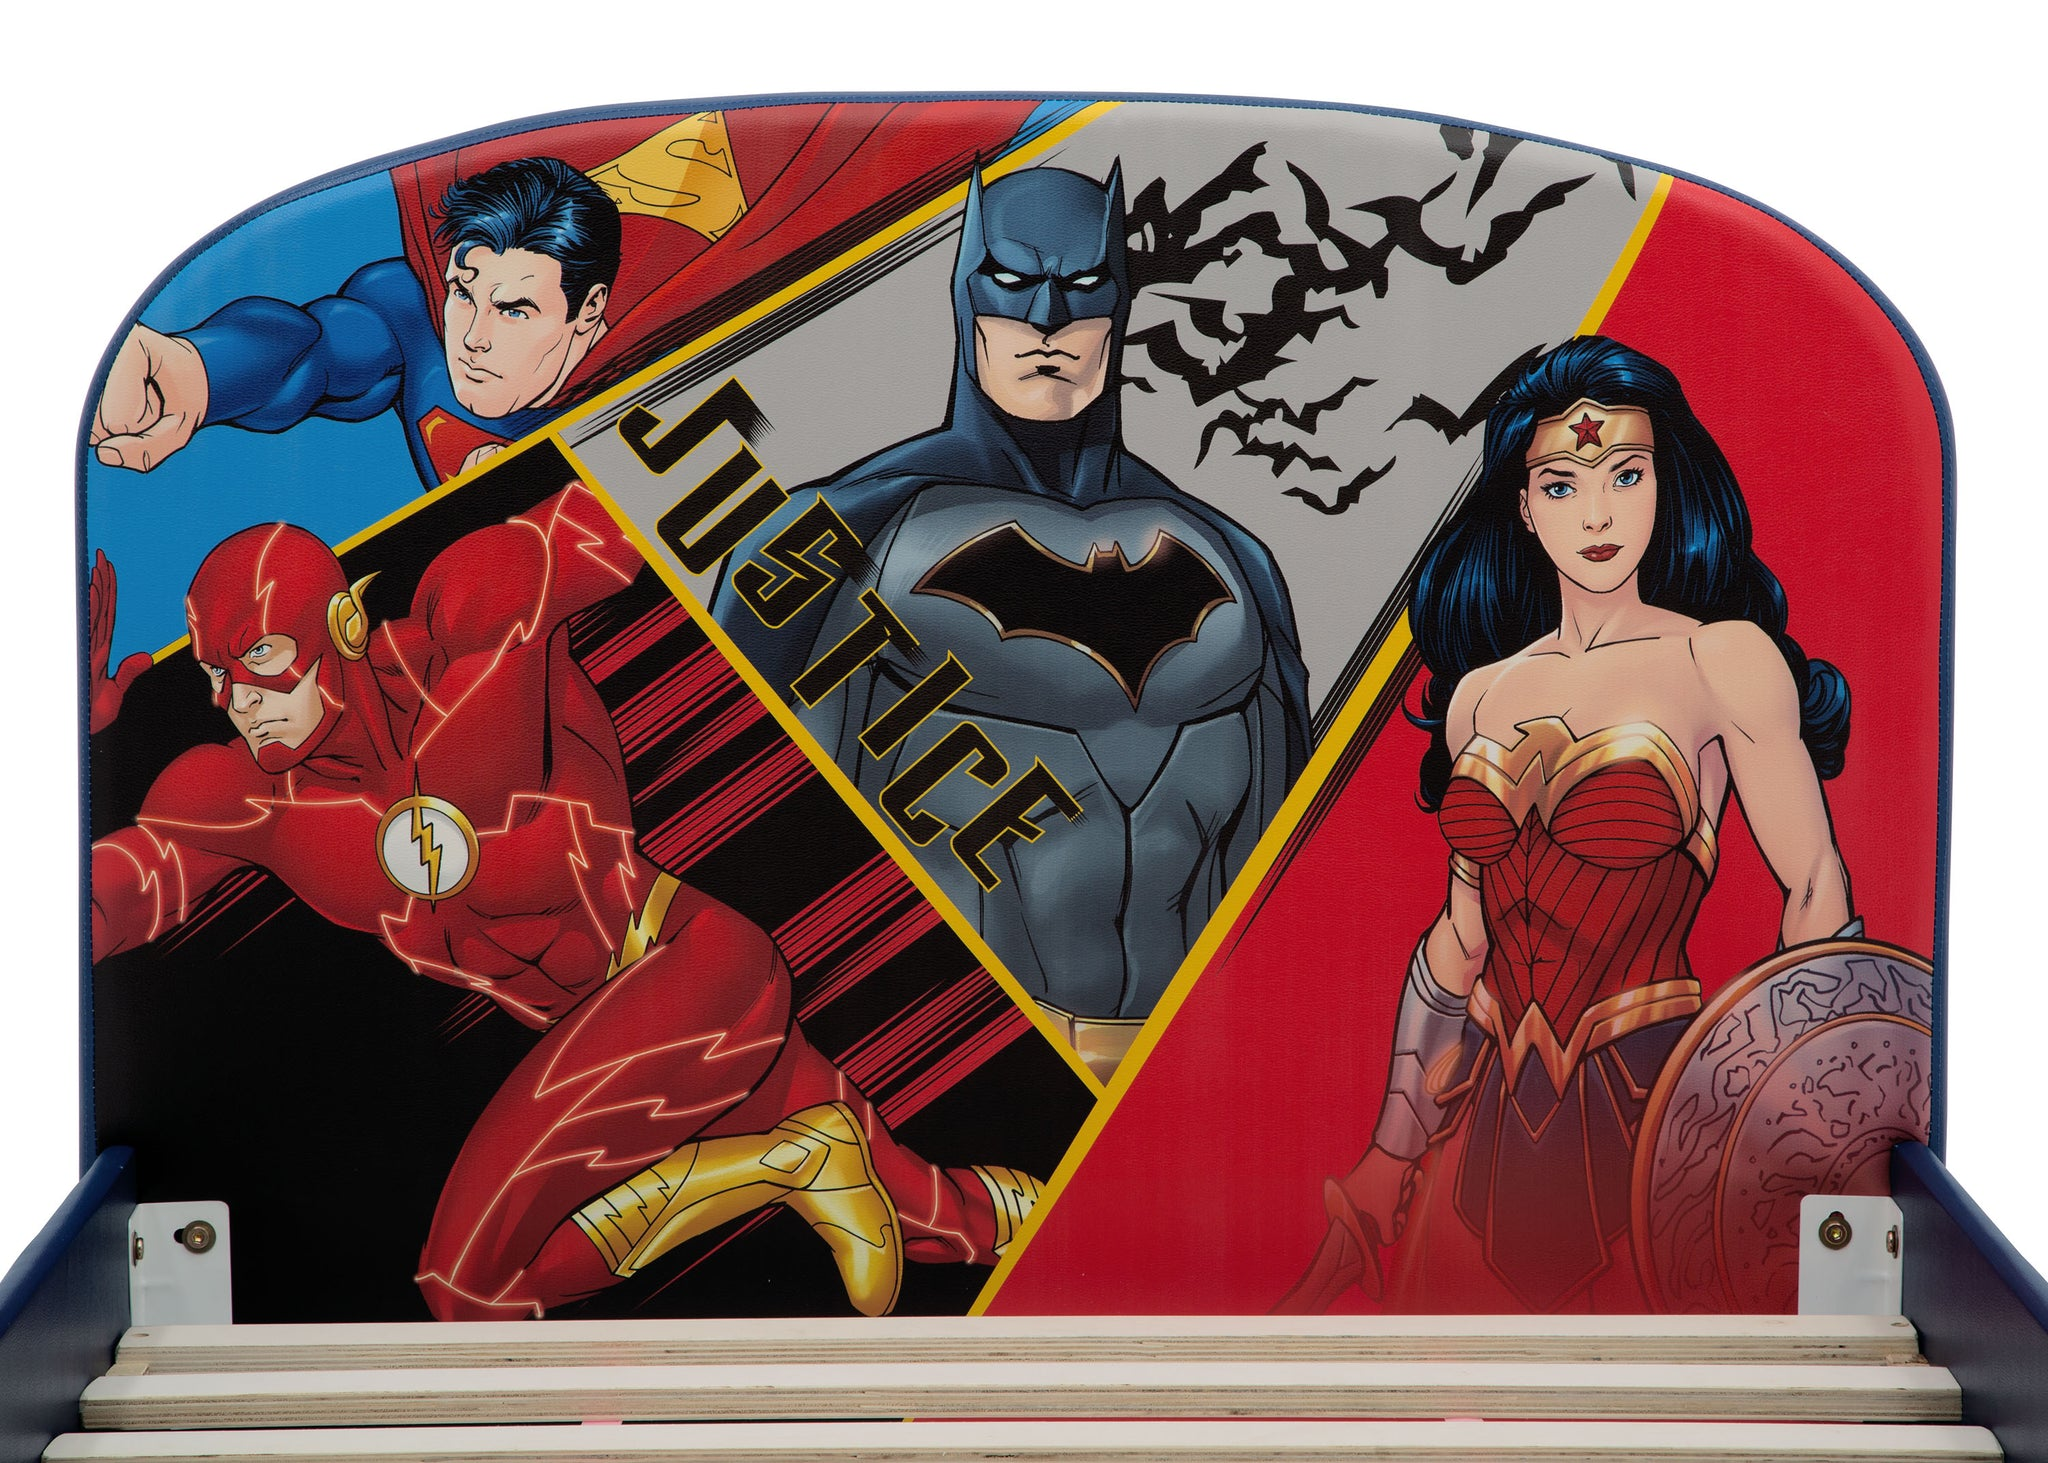 Delta Children DC Comics Justice League Upholstered Twin Bed Justice League (1215), Headboard View a3a